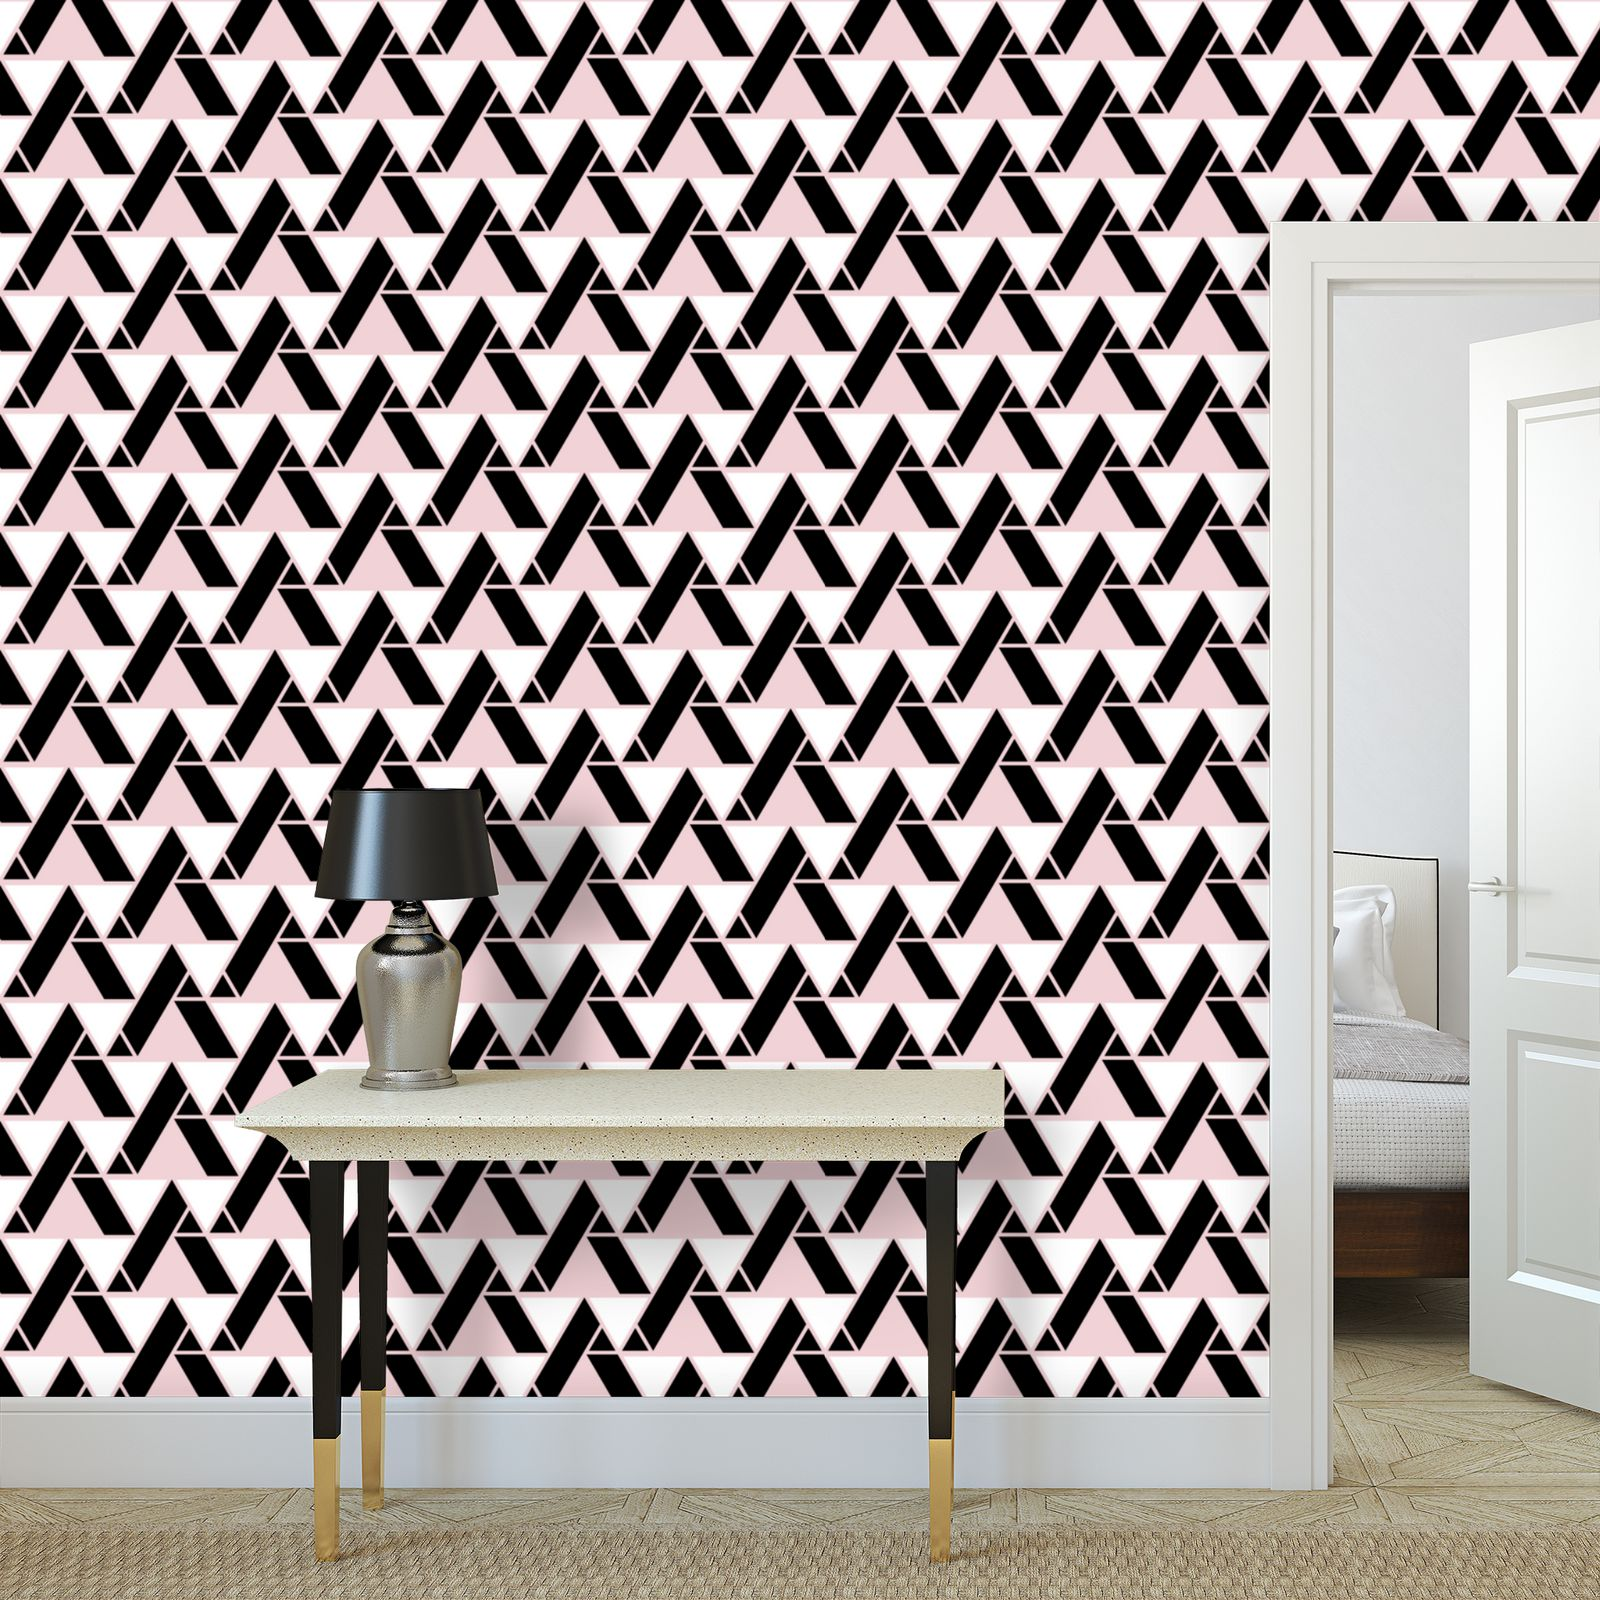 Rosy black - Wallpaper Rolls - pink geometric, abstract, fashion gift